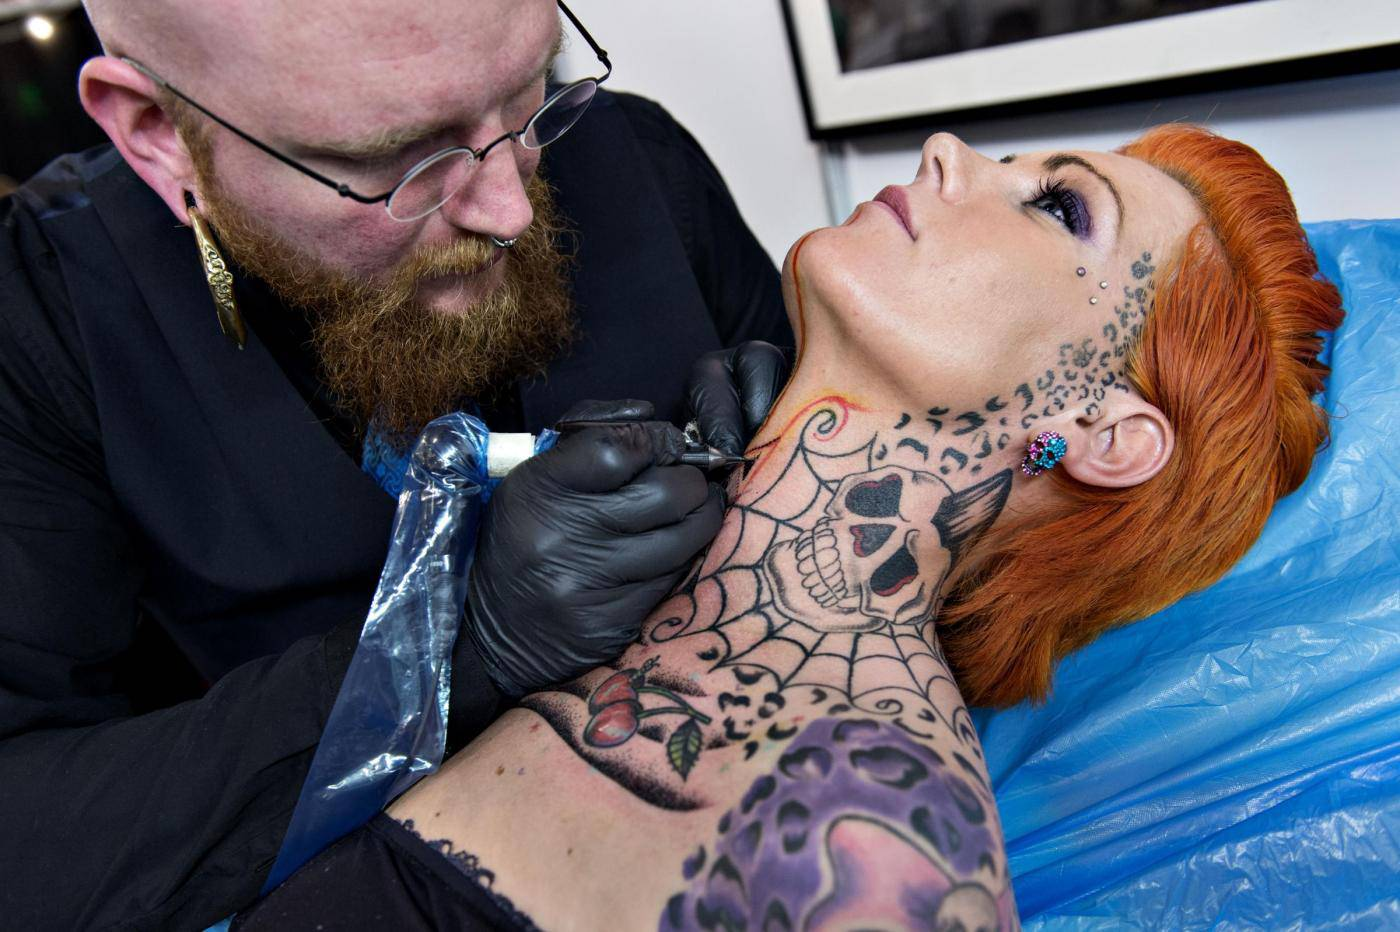 Pernille Ferdinandsen receives a neck tattoo from Peter Madsen during the third Copenhagen Ink Festival which opened Thursday May 9, 2013 in Copenhagen, Denmark, the biggest tattoo festival in Northern Europe. During the three days, 180 of the world's best and most celebrated national and international tattoo artists show the audience their skills in making art on the body and tattoo's on the audience. (AP Photo/Polfoto, Lars Krabbe) DENMARK OUT